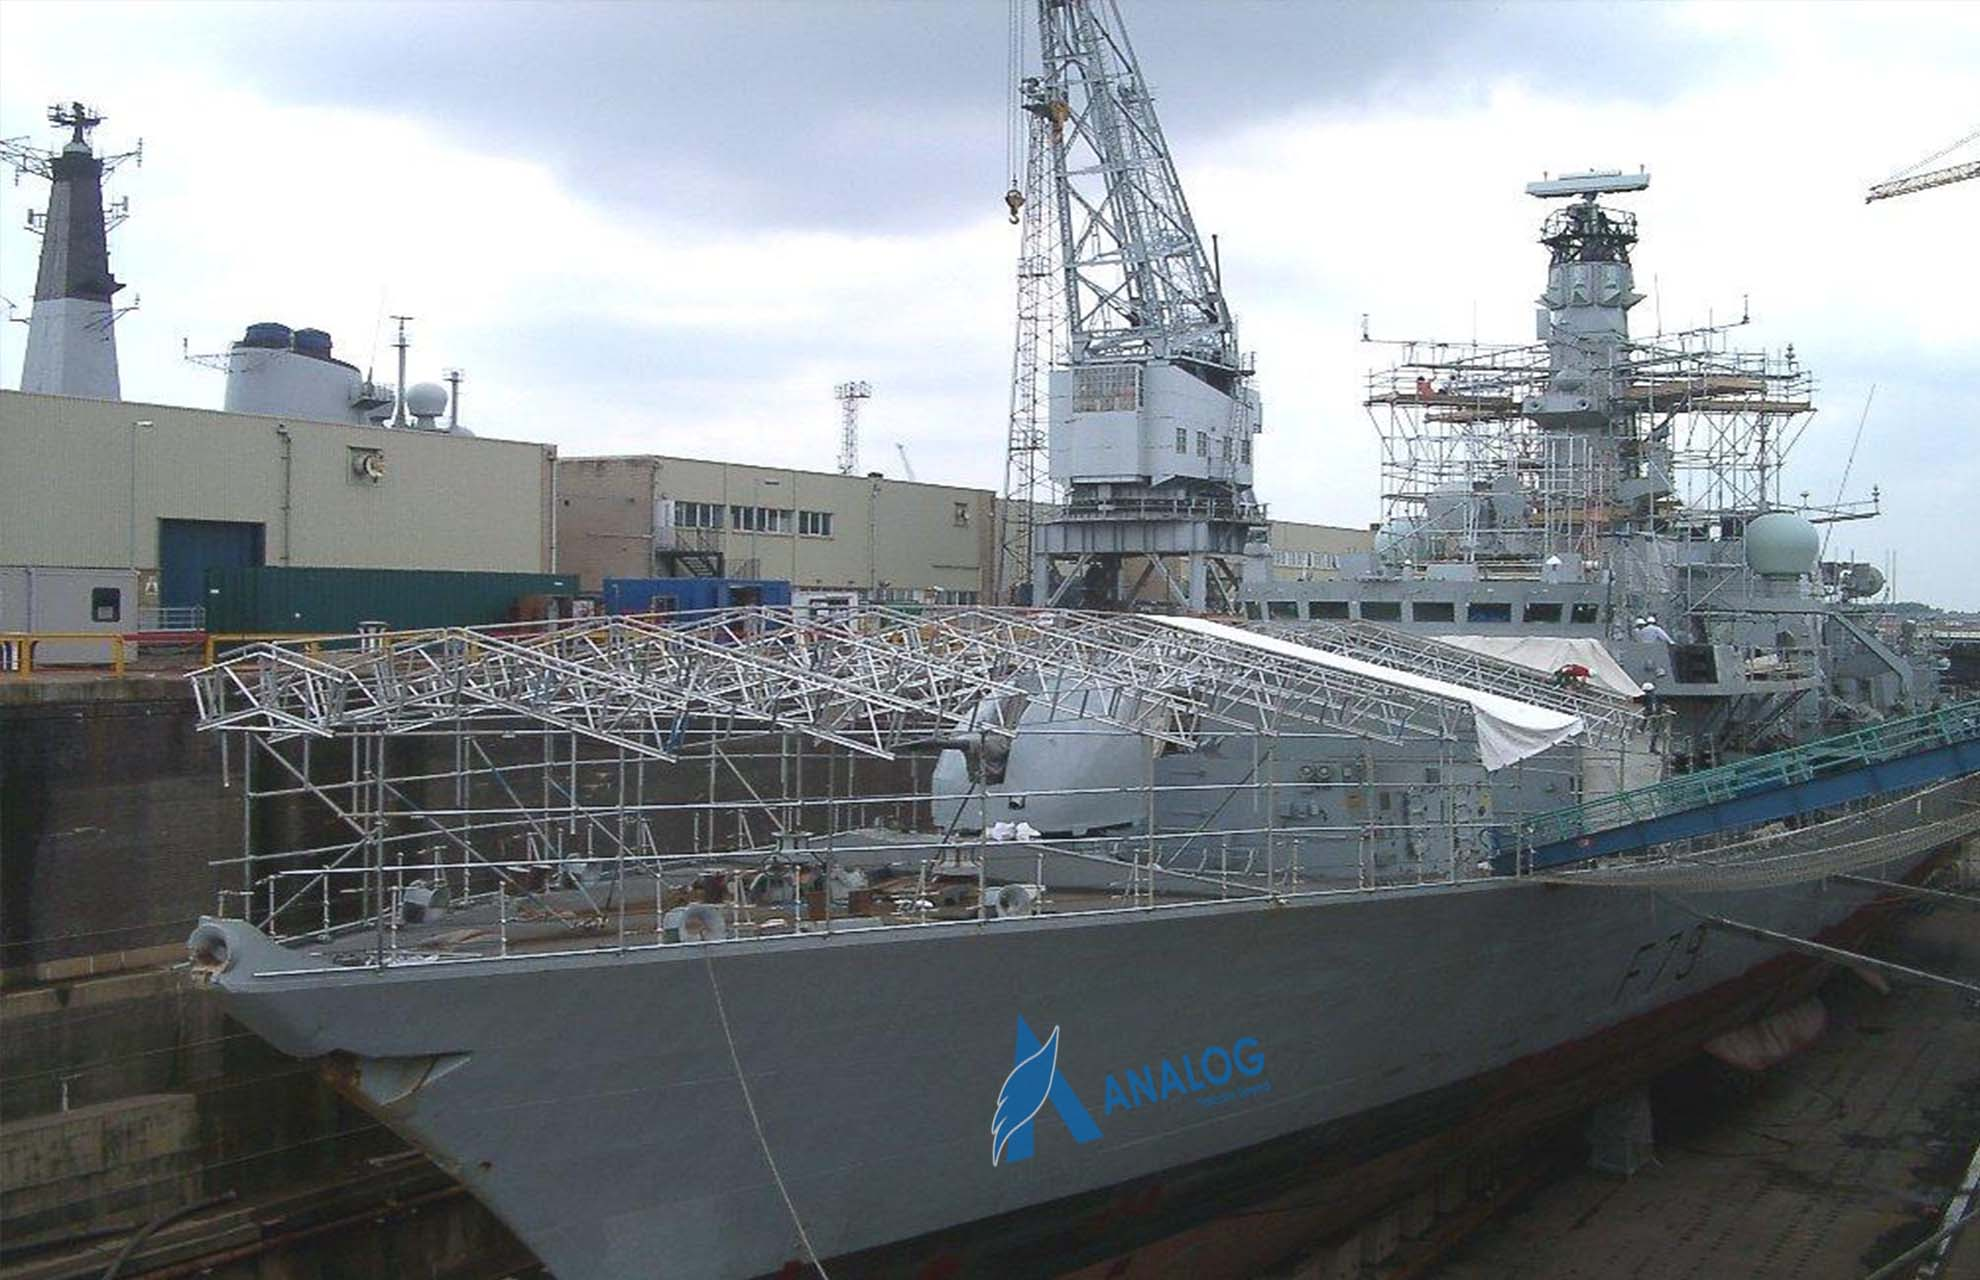 Scaffolding for Ship Building Repair and Maintenance